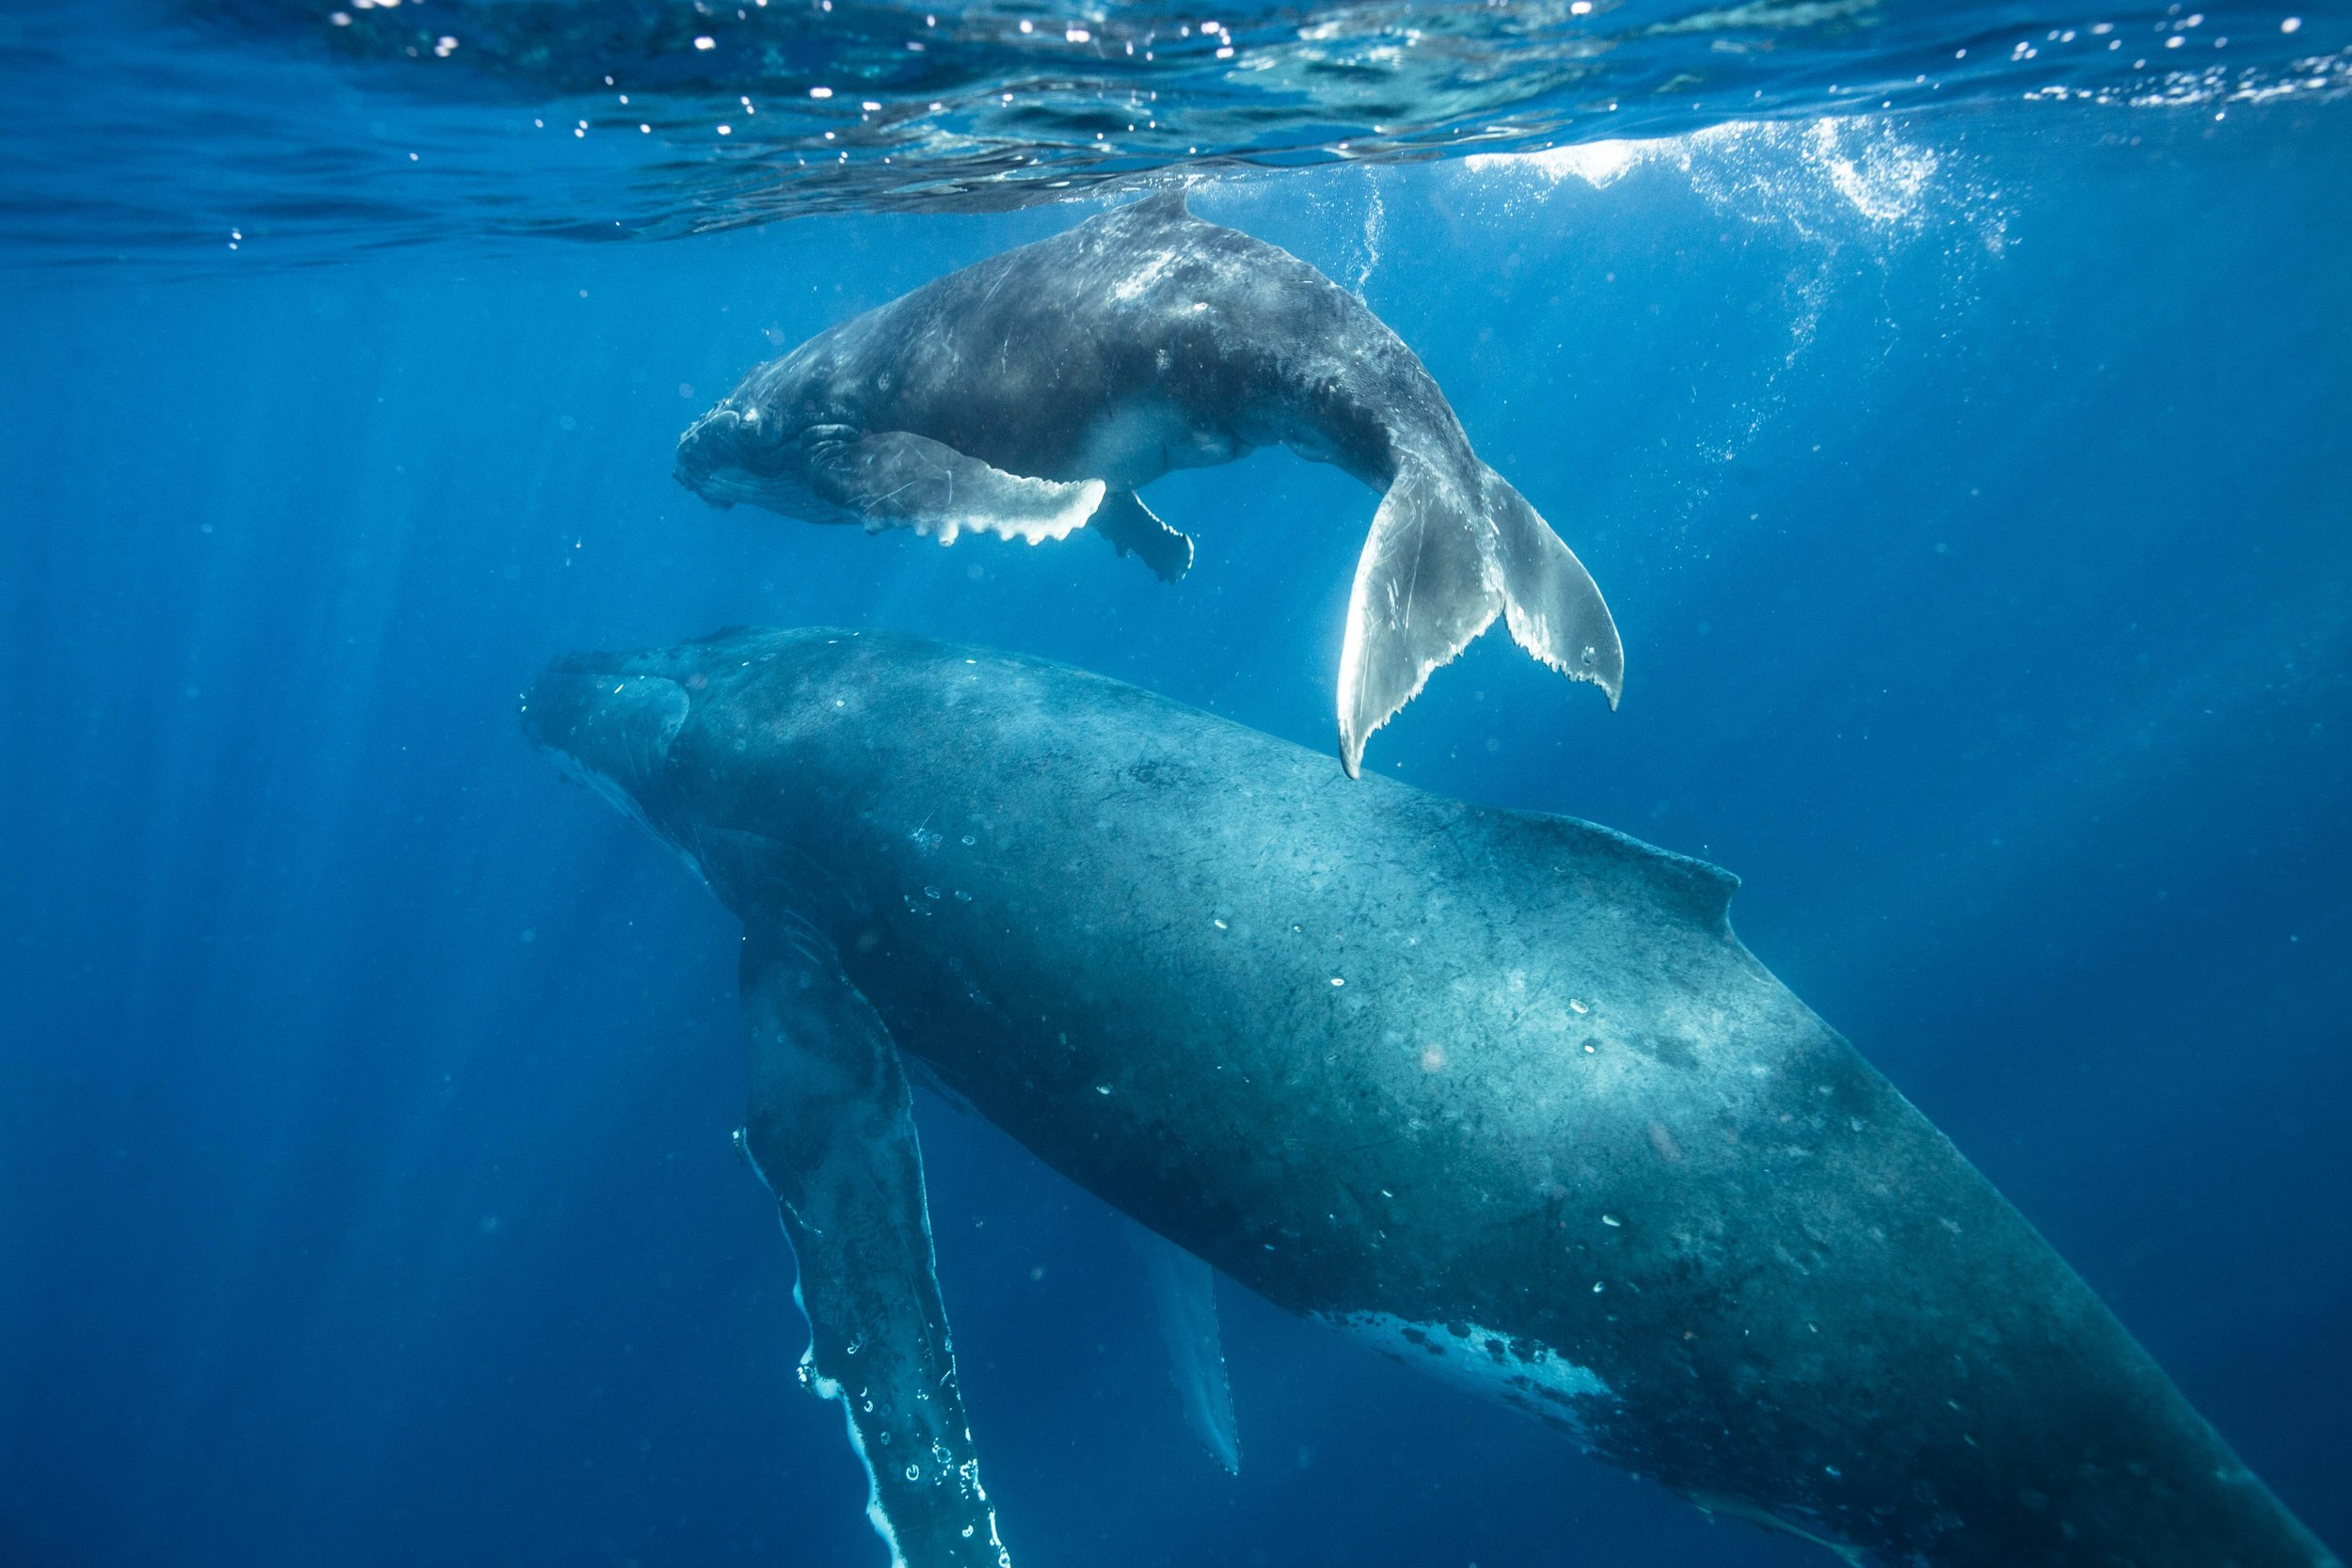 A mother and calm swim off together.